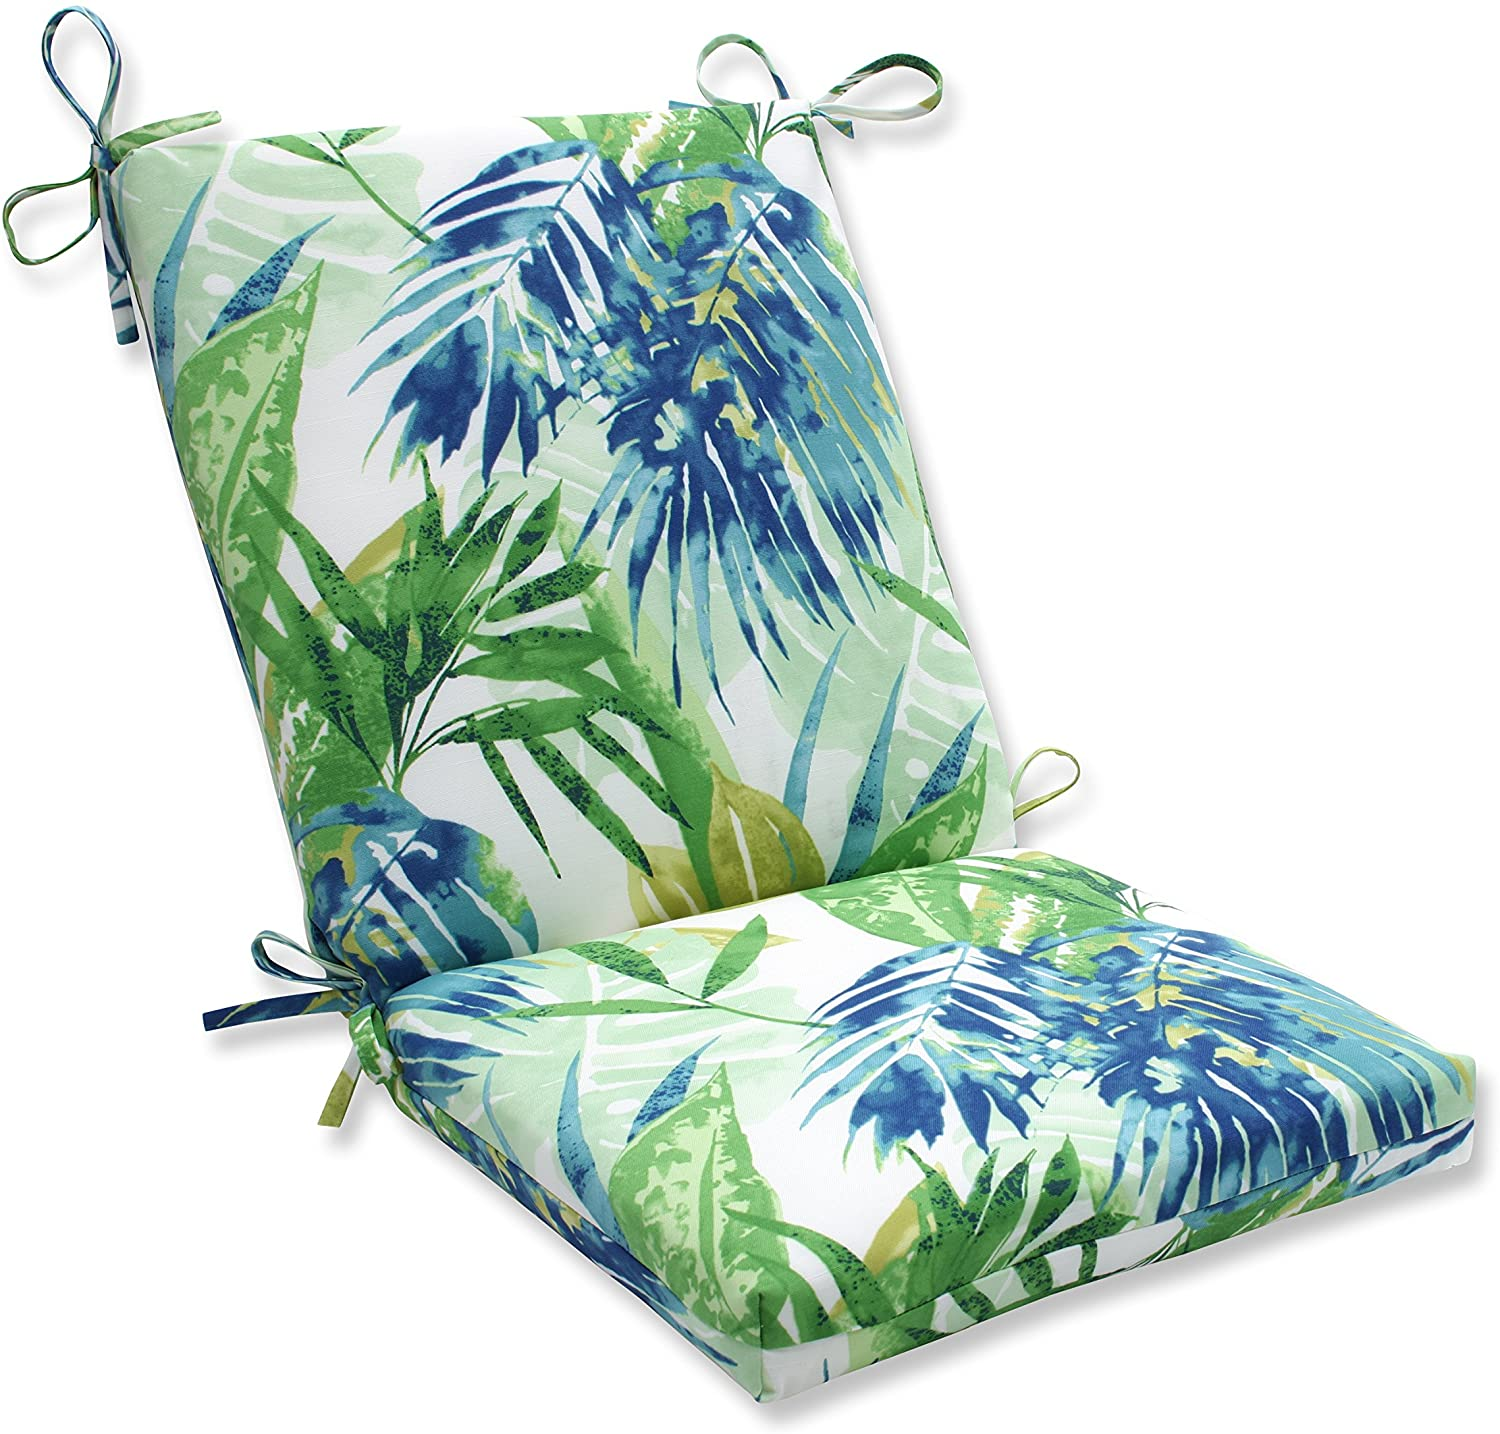 Pillow Perfect Outdoor/Indoor Soleil Squared Corners Chair Cushion, Blue/Green